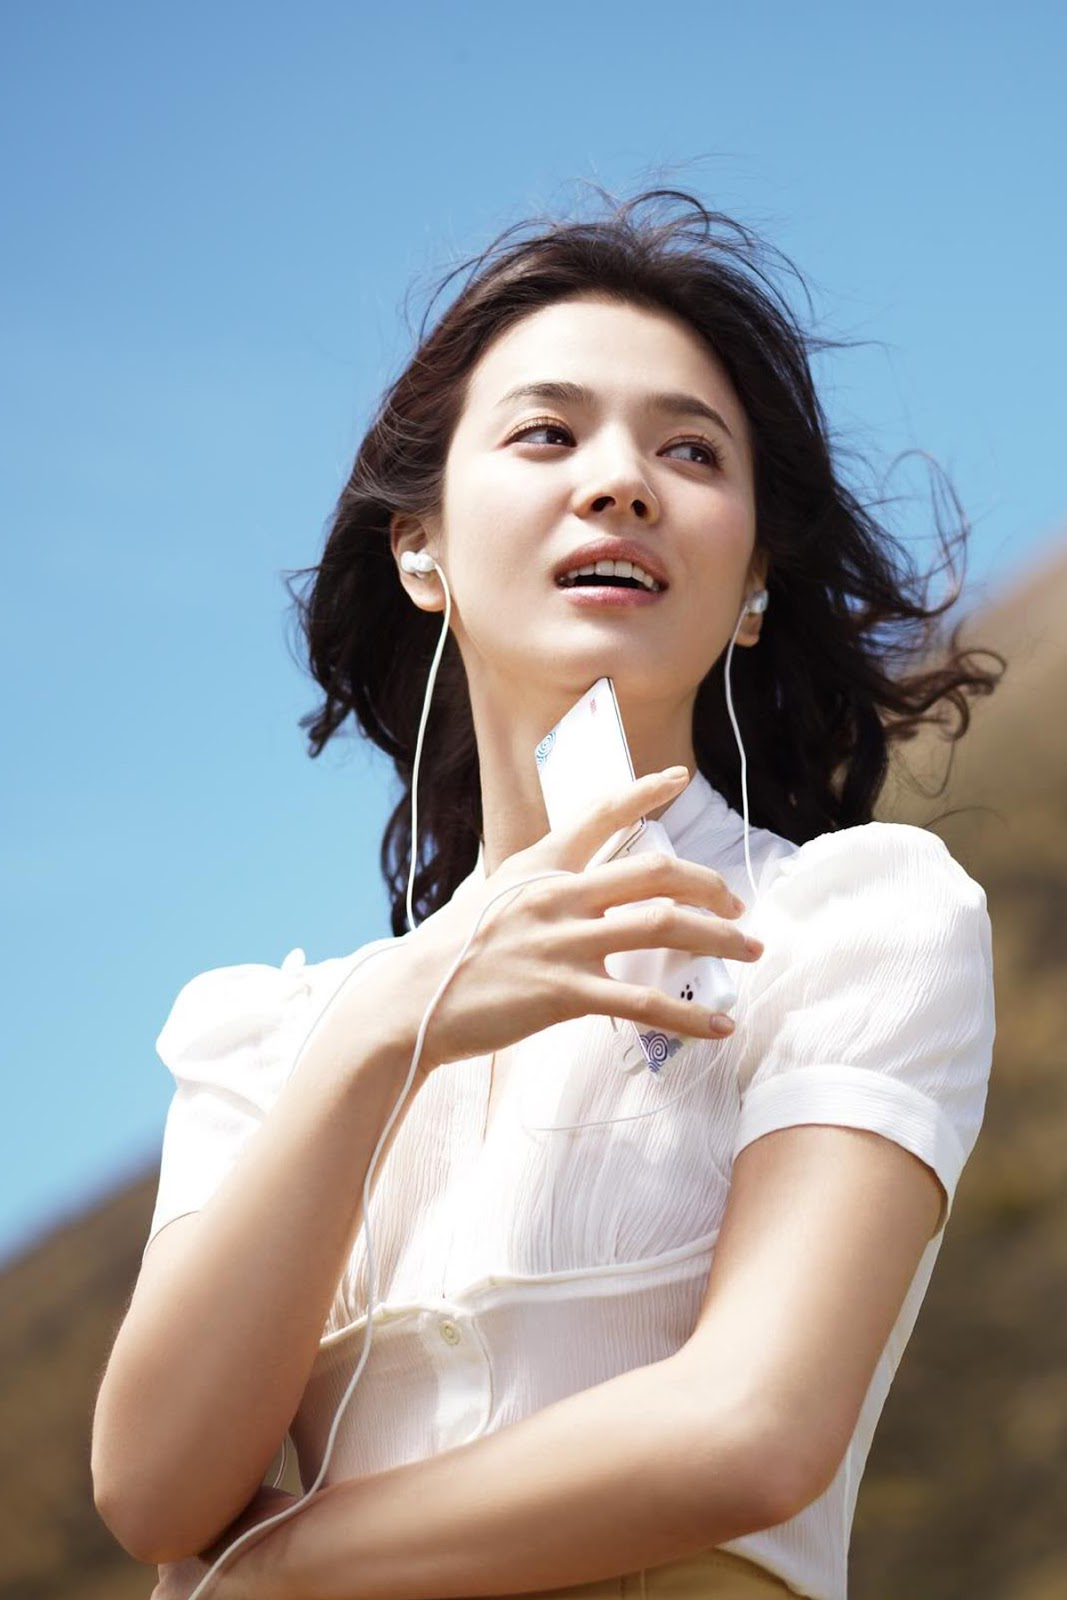 Song Hye Kyo Hd Wallpapers Hd Wallpapers High